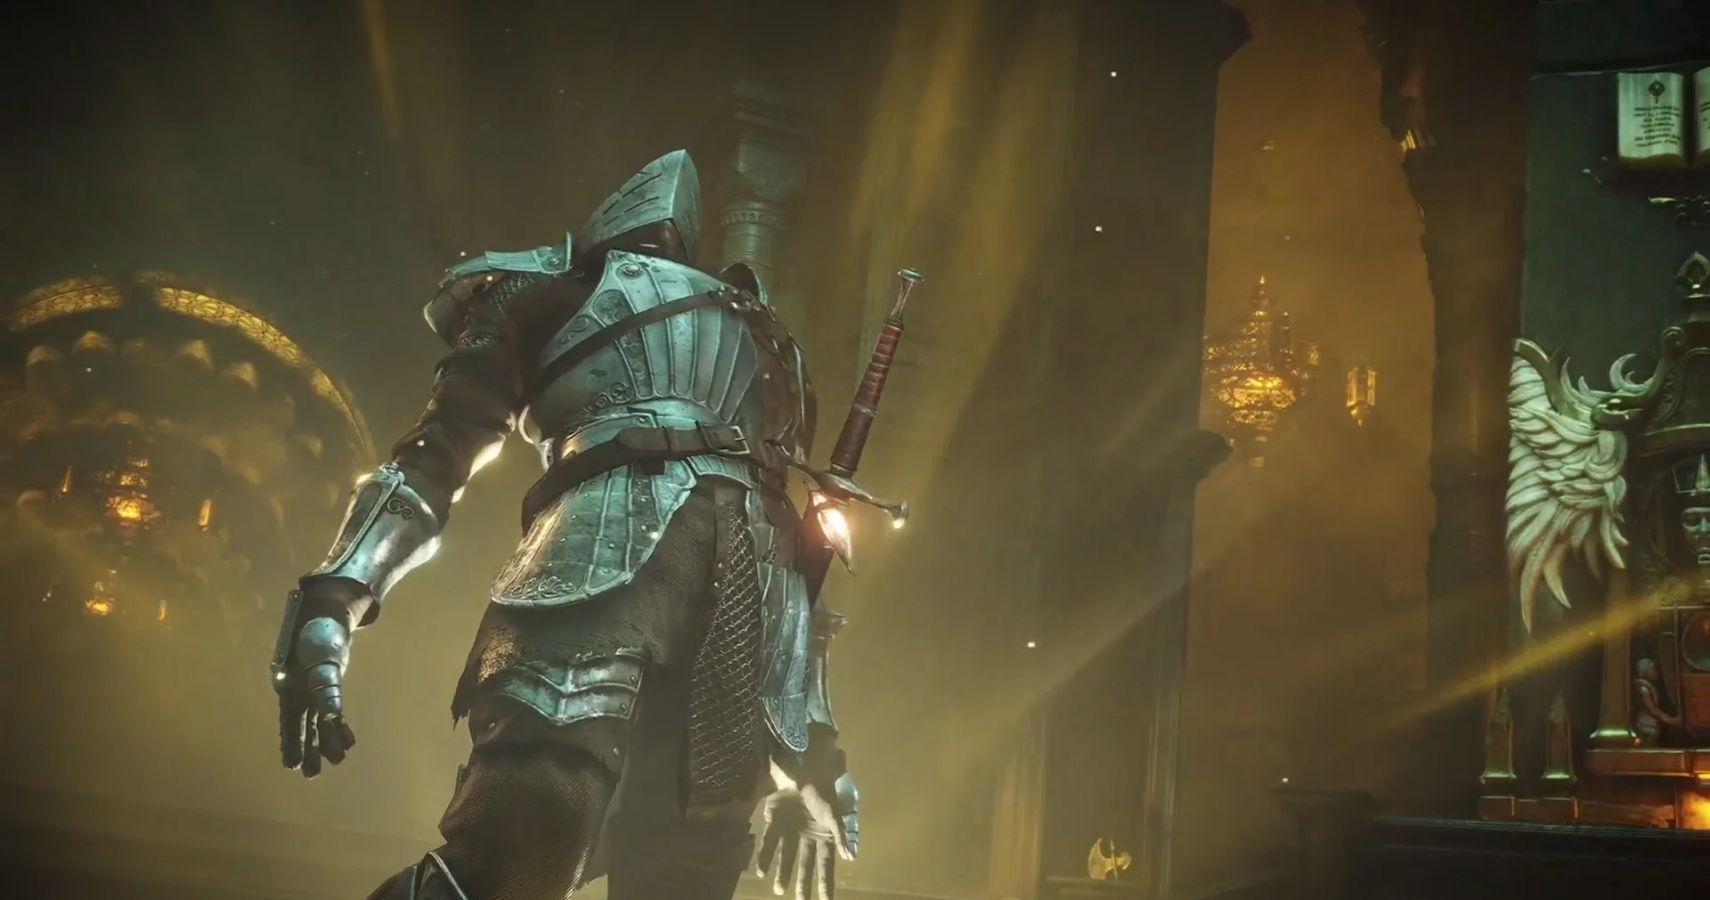 Demon's Souls Remake Is A PS5 Exclusive – No PC Version Planned